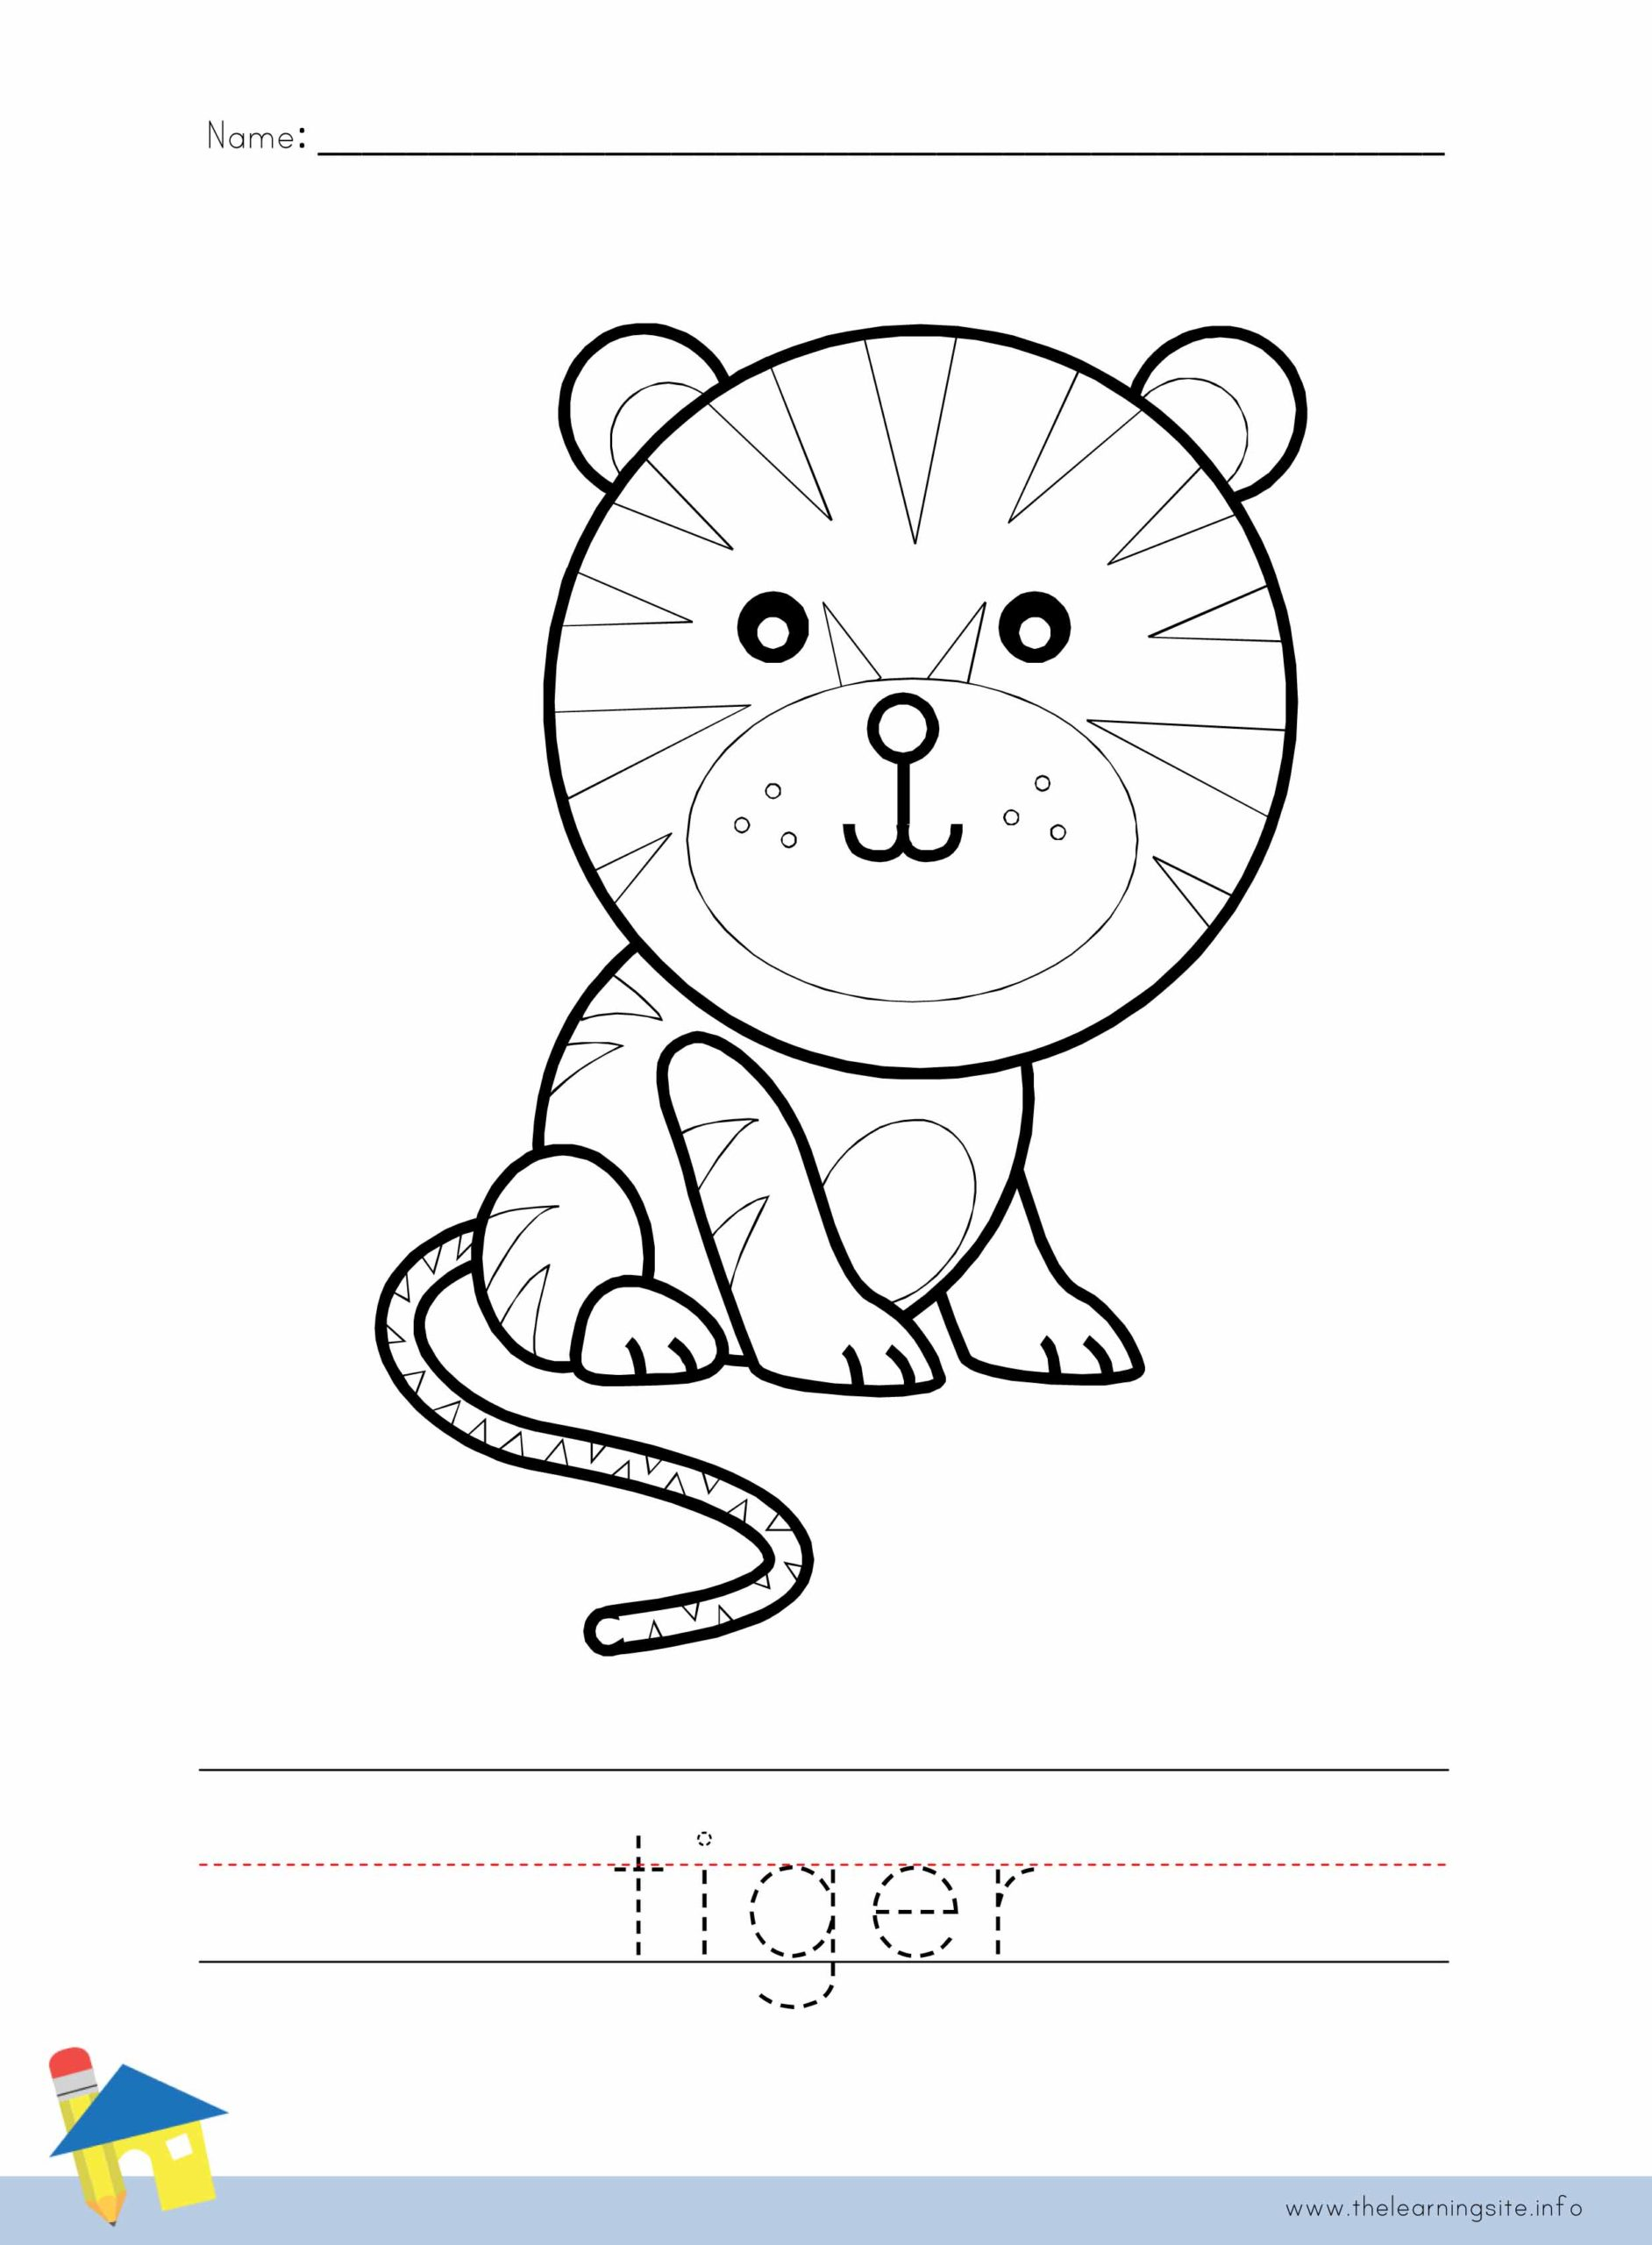 Tiger Coloring Worksheet The Learning Site